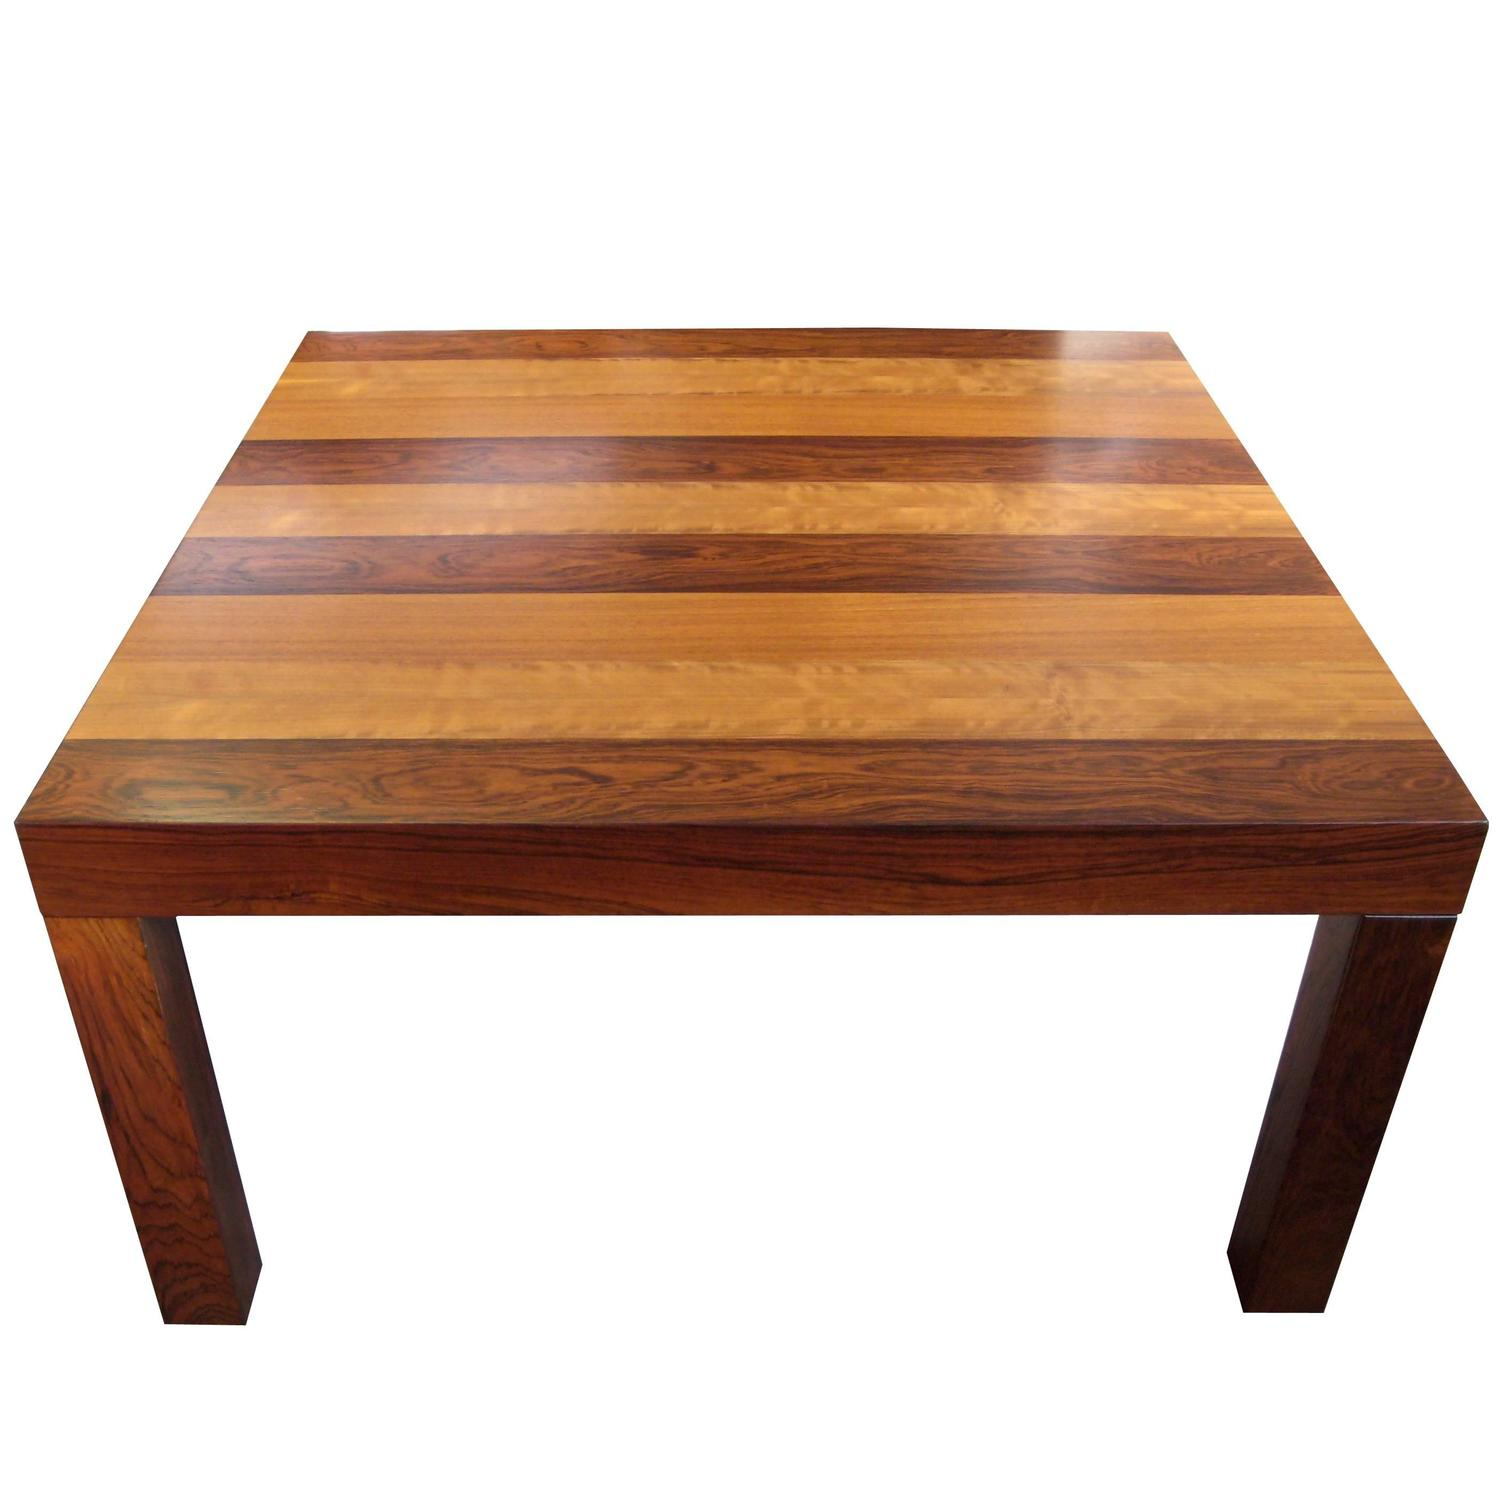 Modern Parsons Square Coffee Table In Strips Of Wood Attributed To